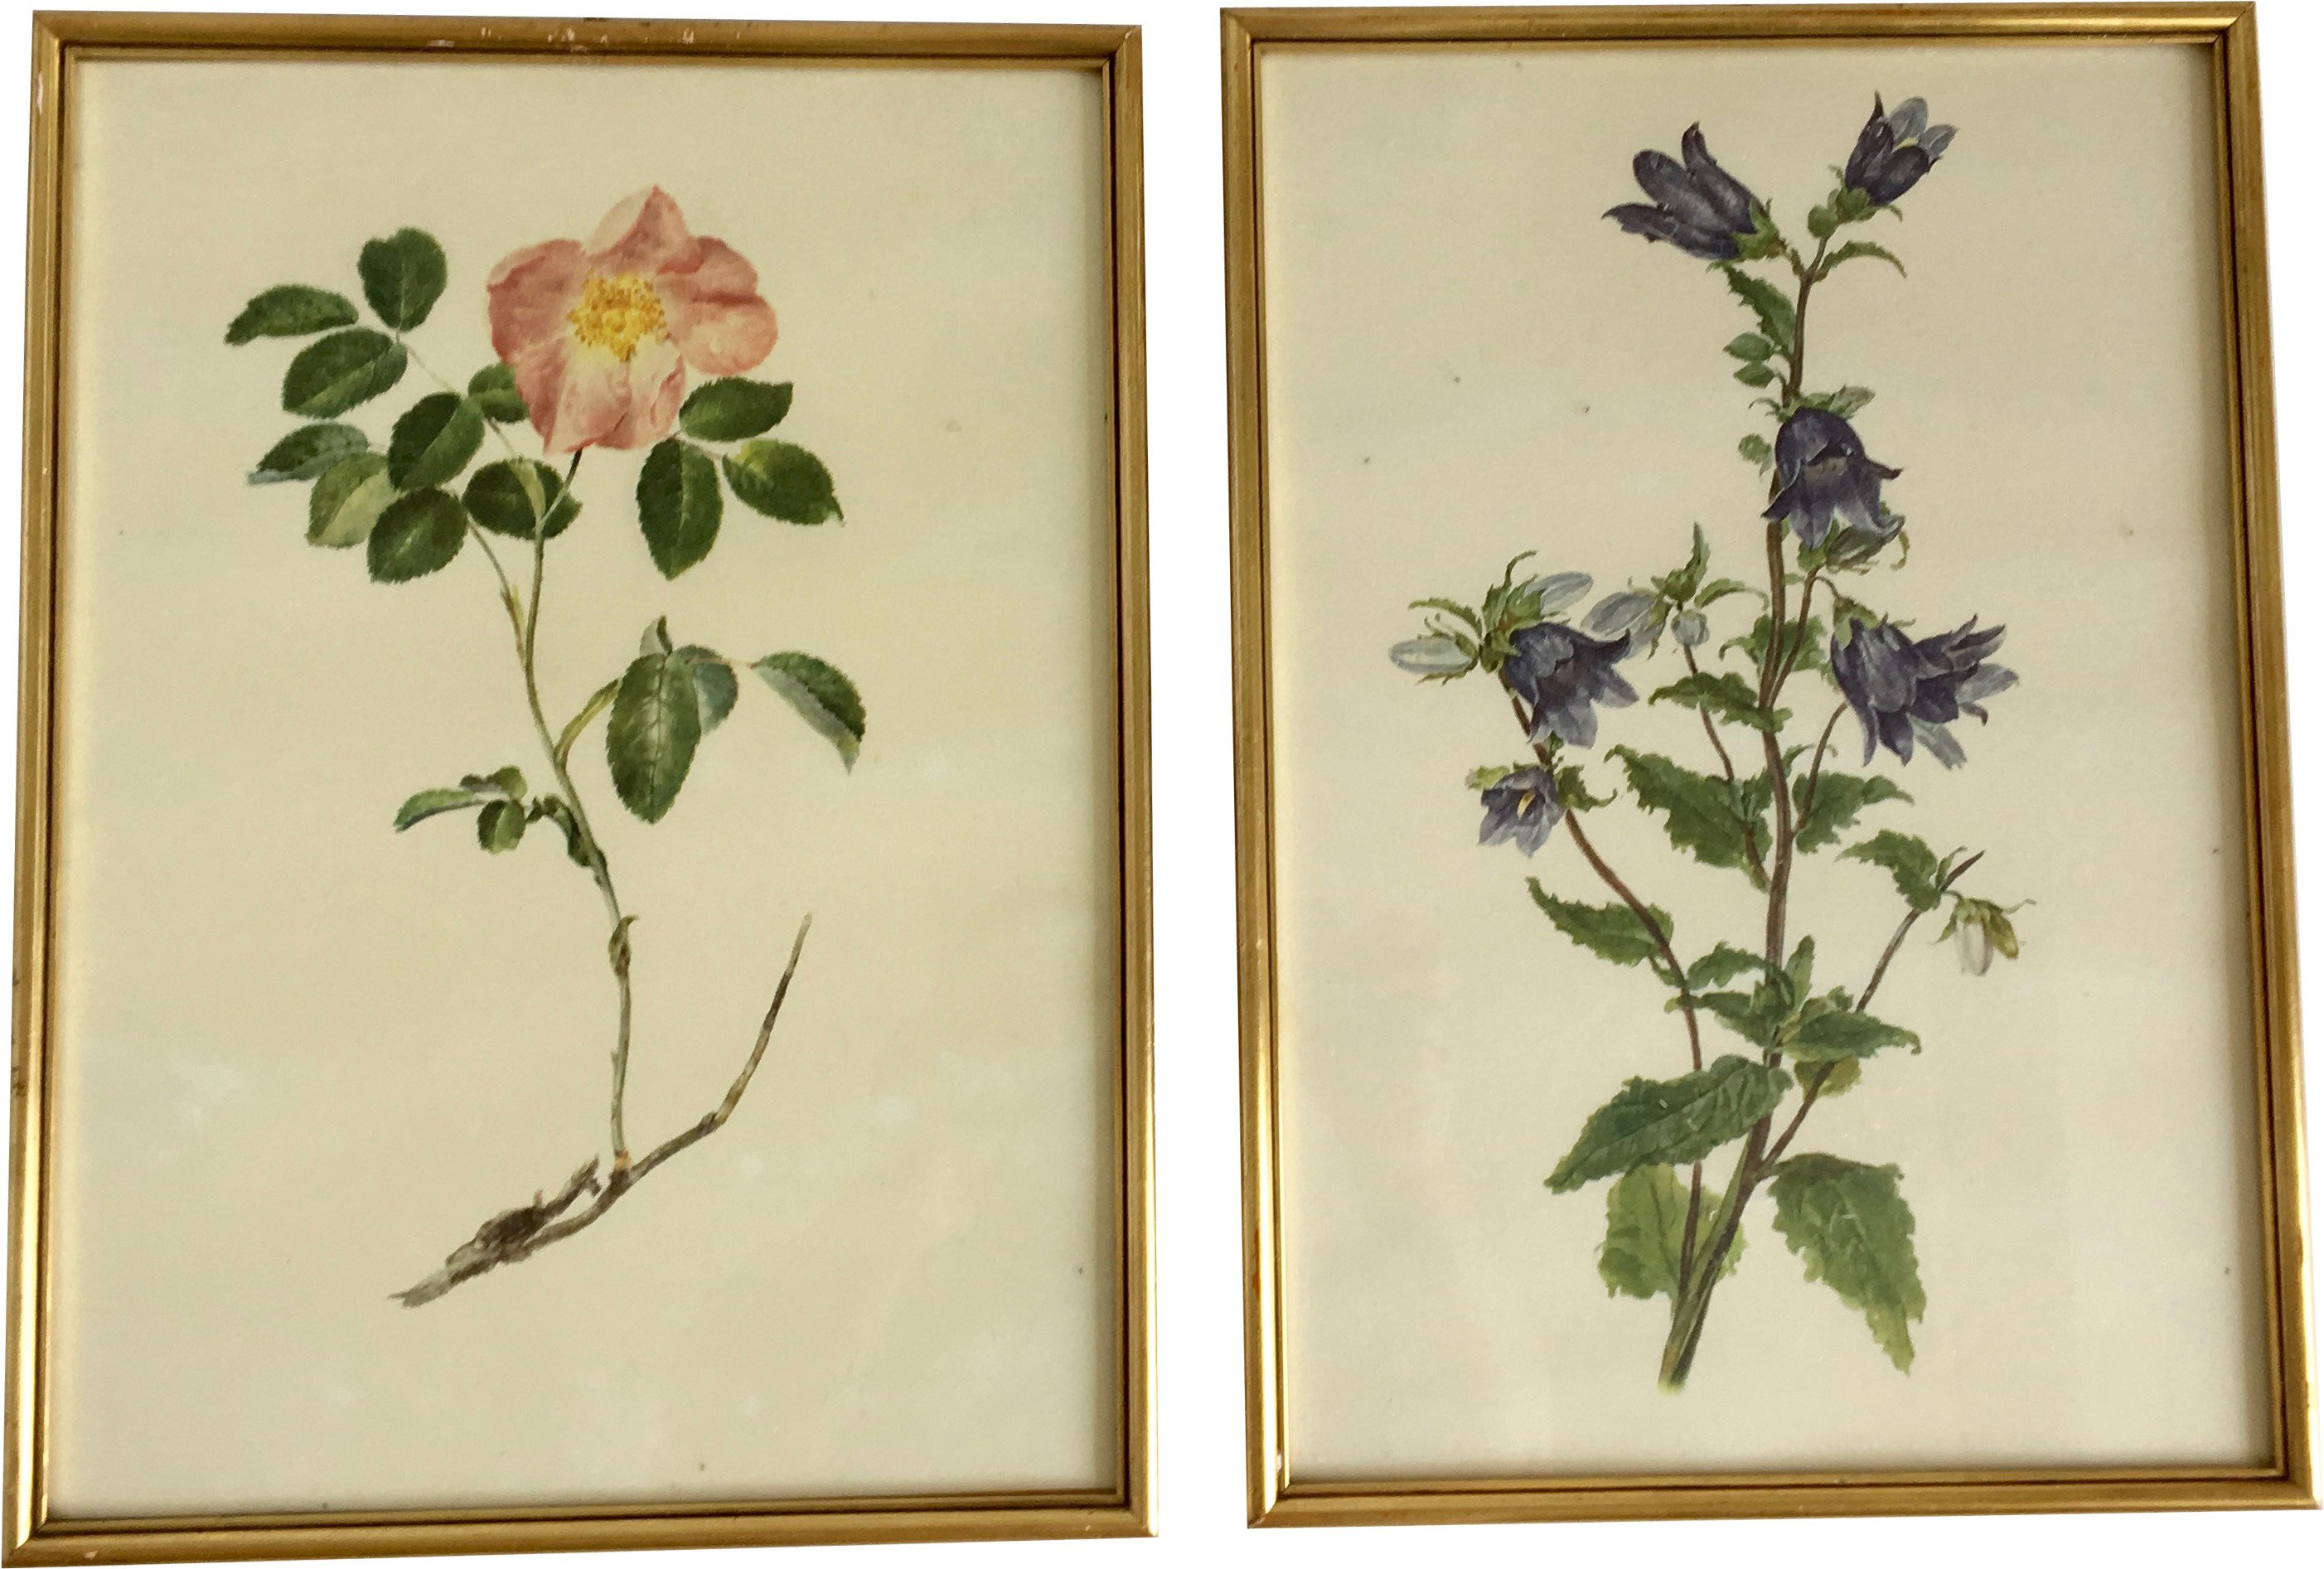 Pair of Botanical Graphics, 1960s